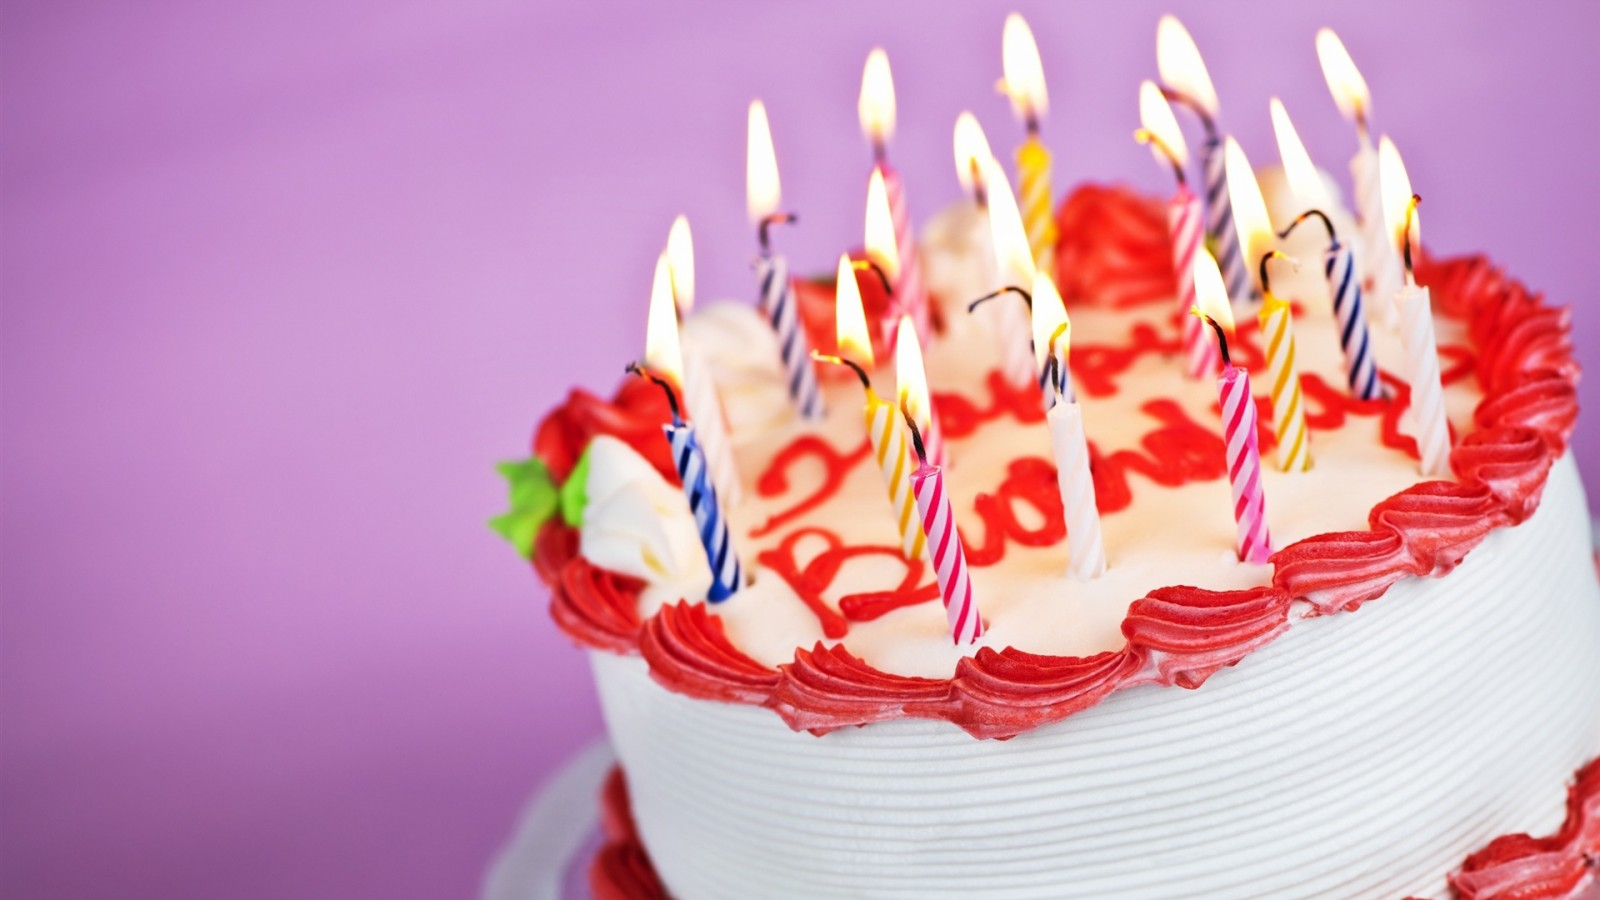 Photos Of Birthday Cake And Wishes : 10 Best Happy Birthday Wishes, Images with Quotes ...